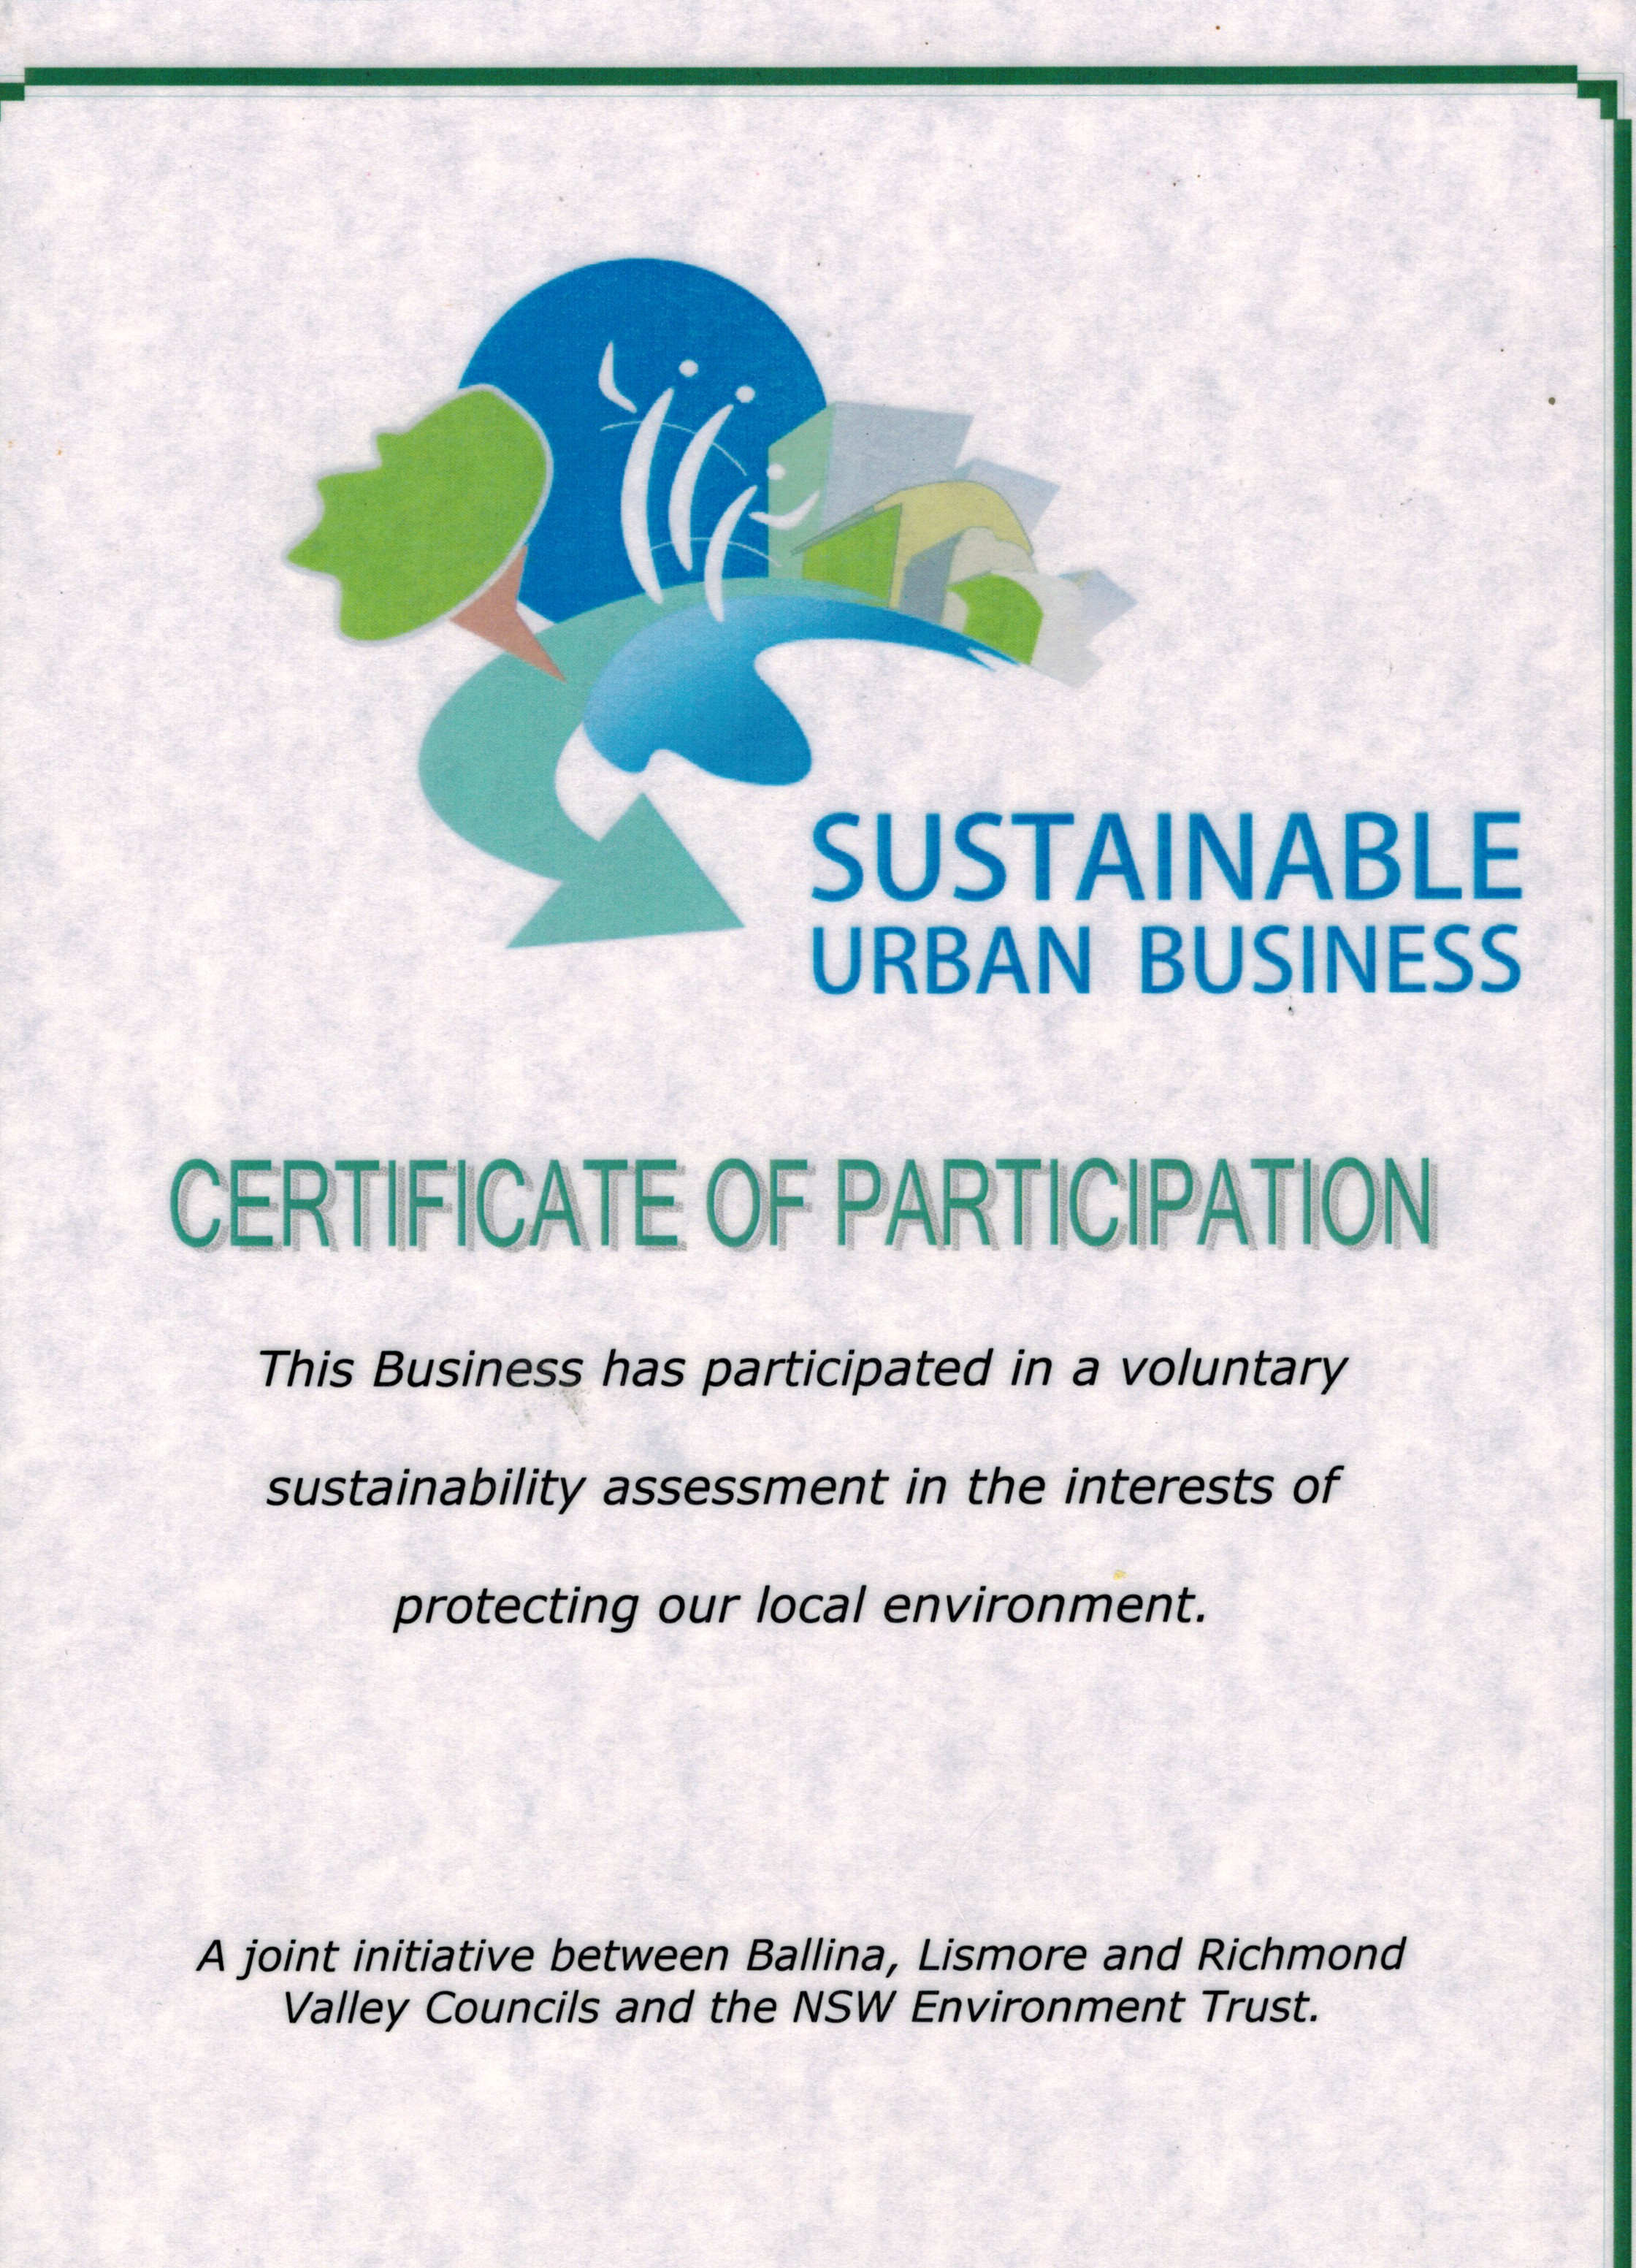 Certicate of a Sustainable Urban Business